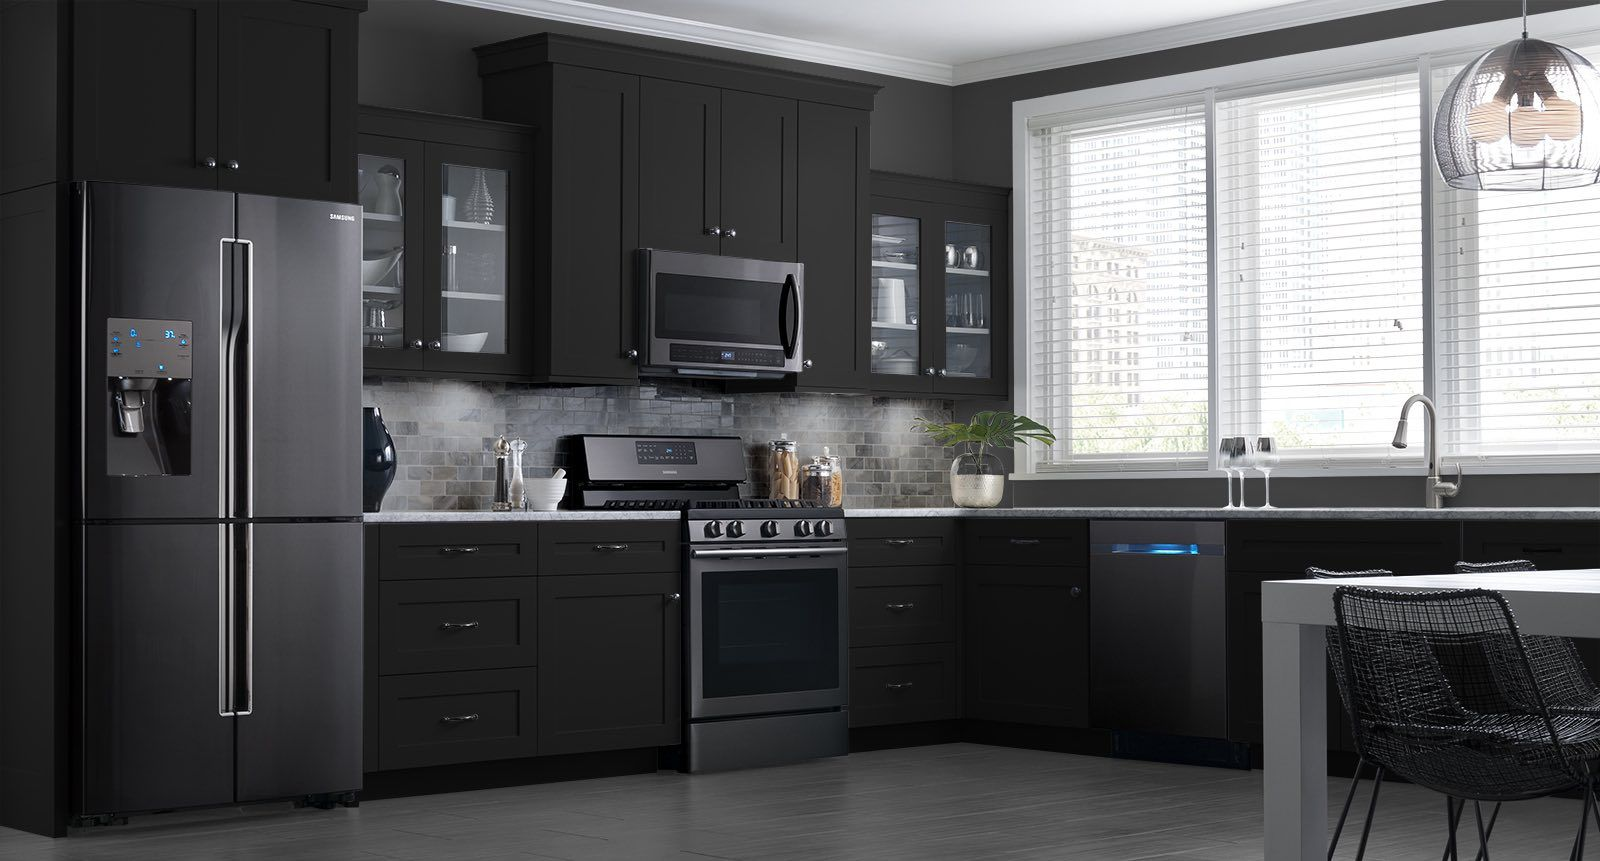 Black Metal Kitchen Cabinets Rohl Faucet These Samsung Stainless Steel Appliances Look